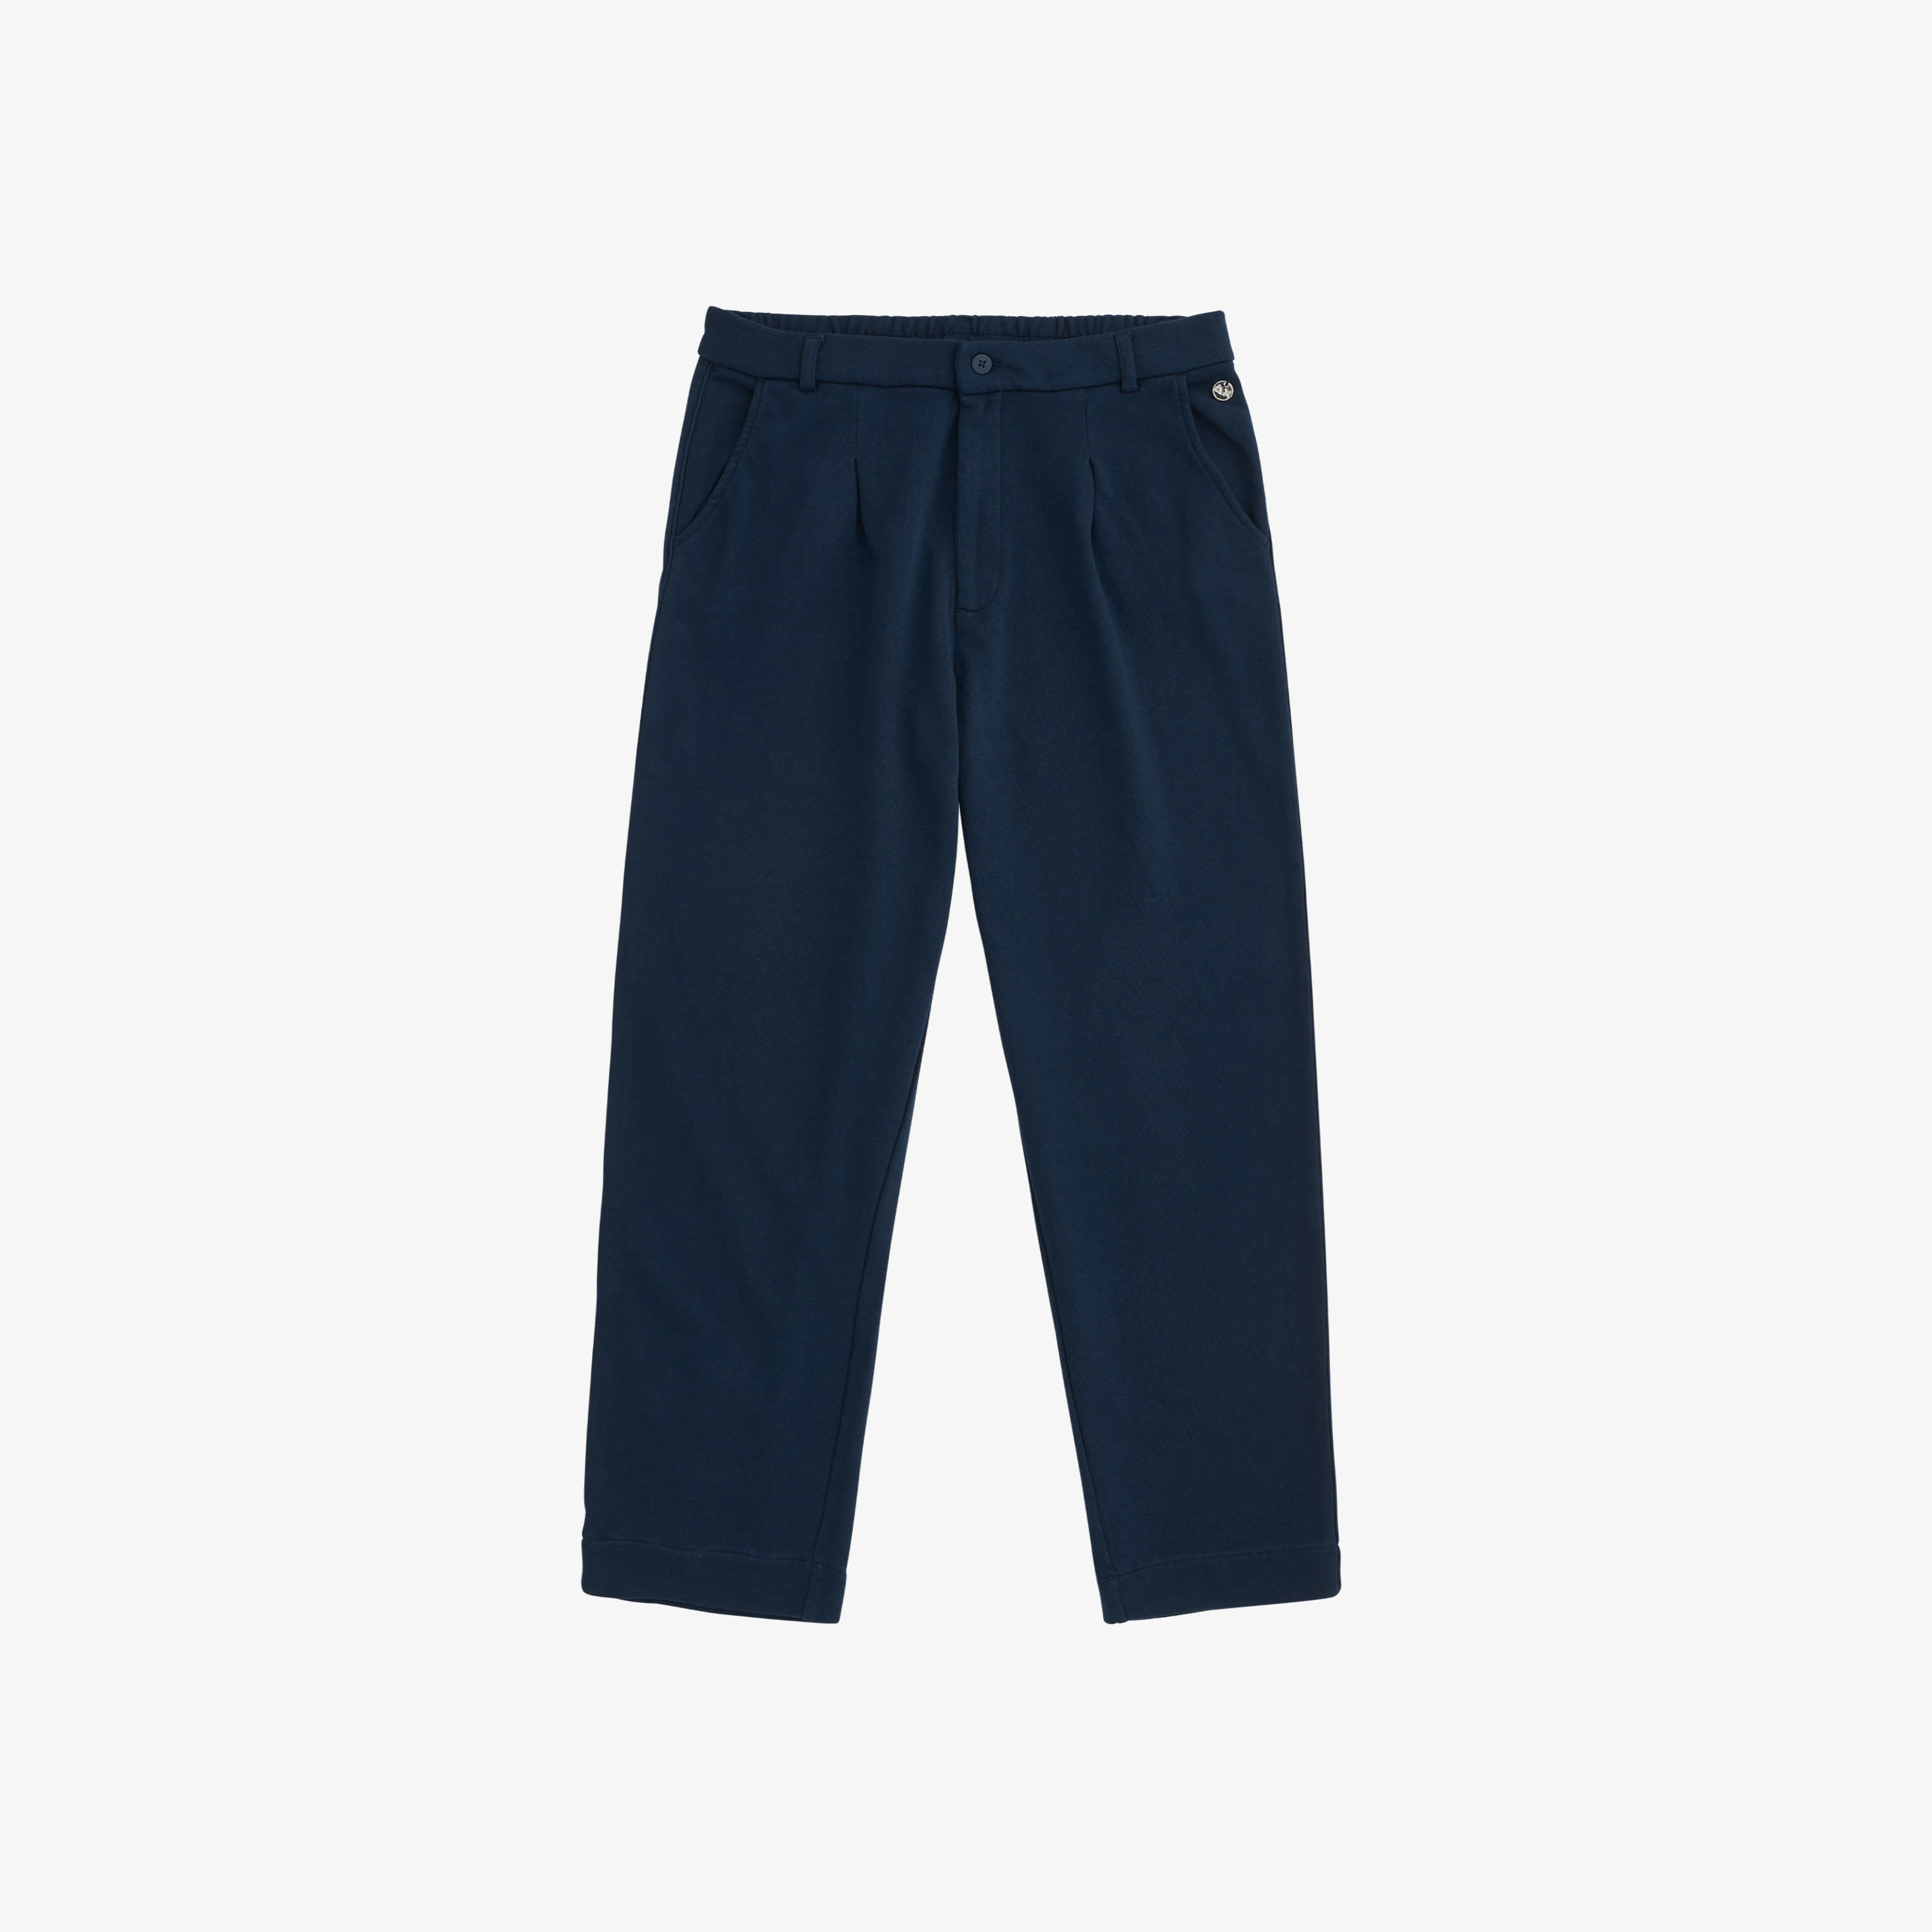 PANT FORMAL COTTON FL. NAVY BLUE